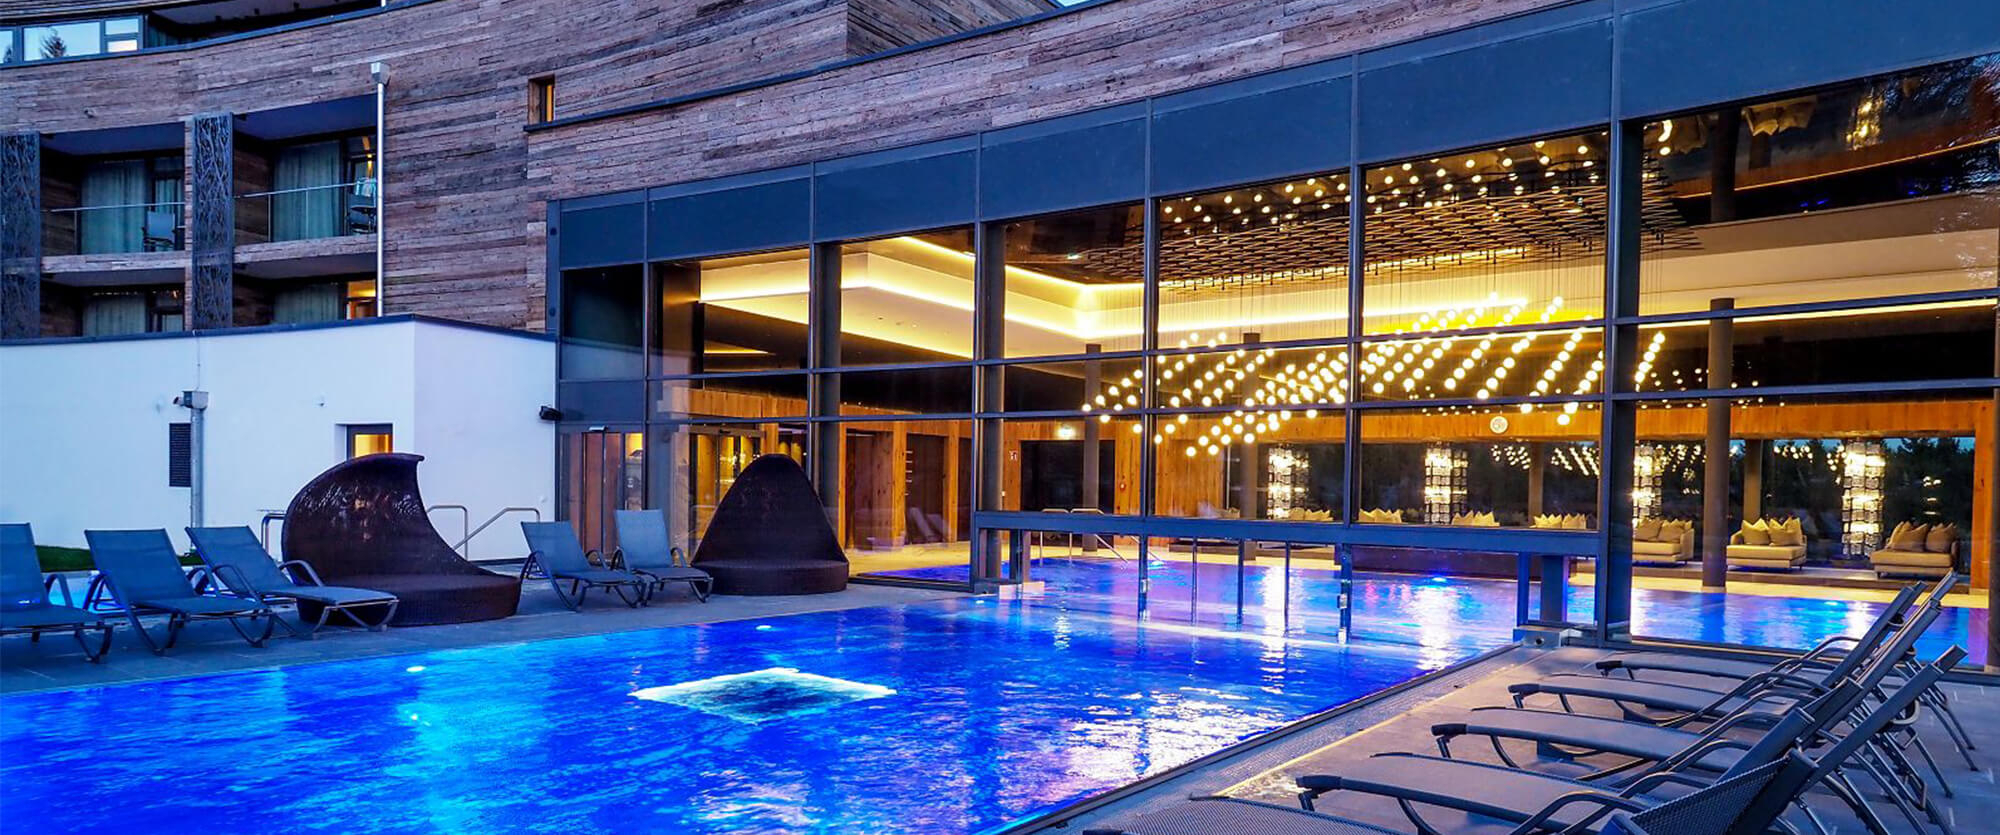 Hotel Swimming Pool Indoor Pool And Outdoor Pool